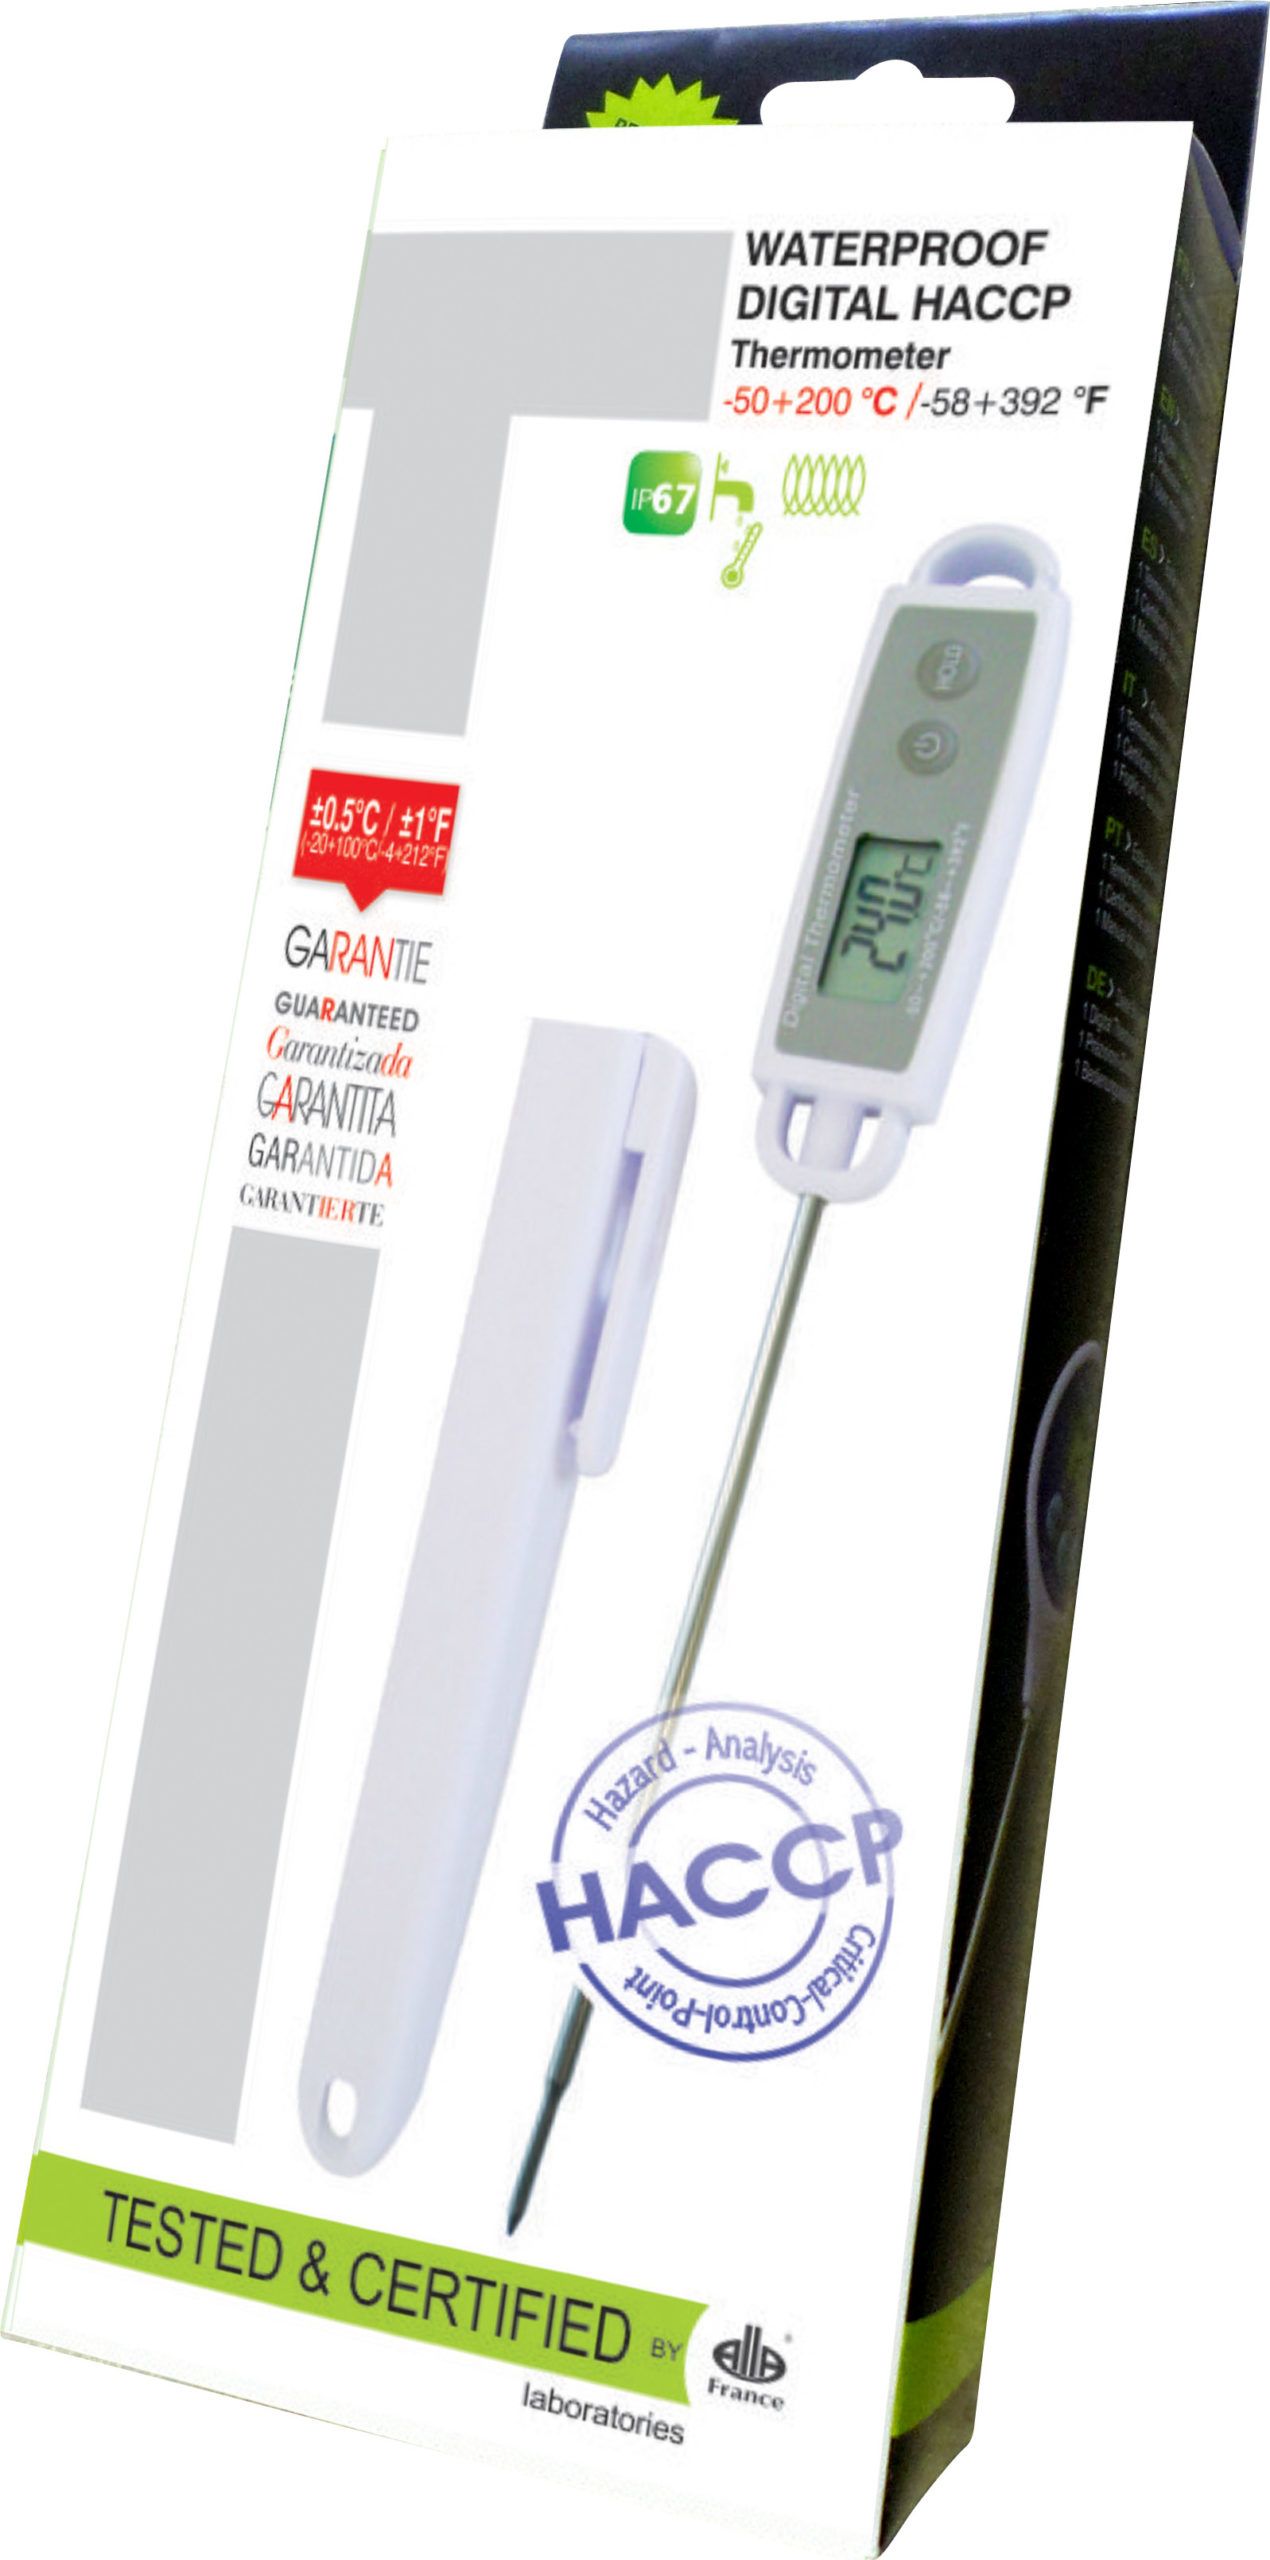 THERMOMETER DIGITAL HACCP (-50 TO +200) HACCP DIGITAL THERMOMETER